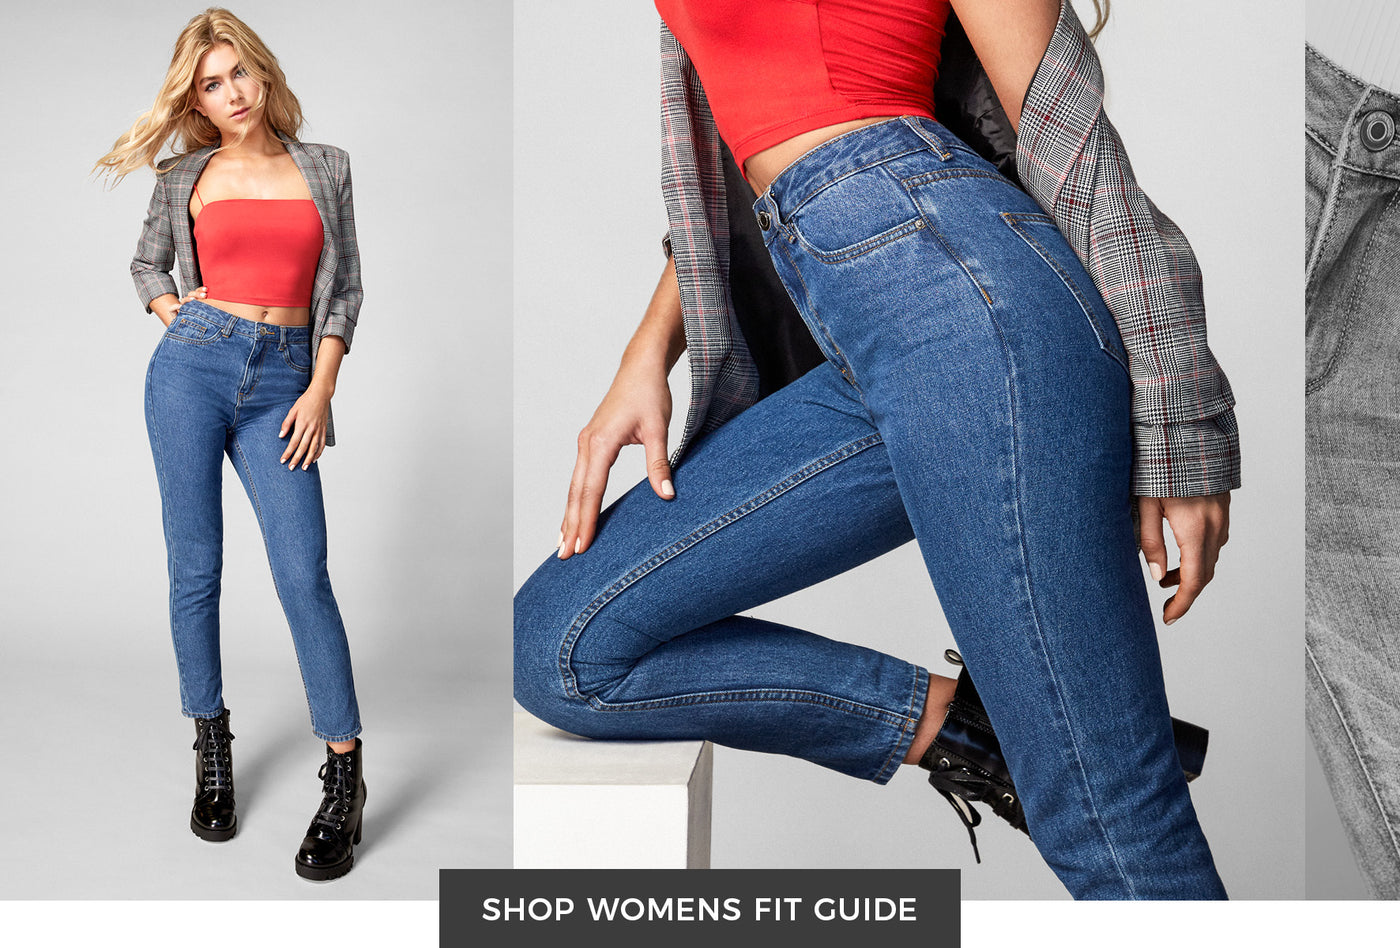 Shop Women's Fit Guide